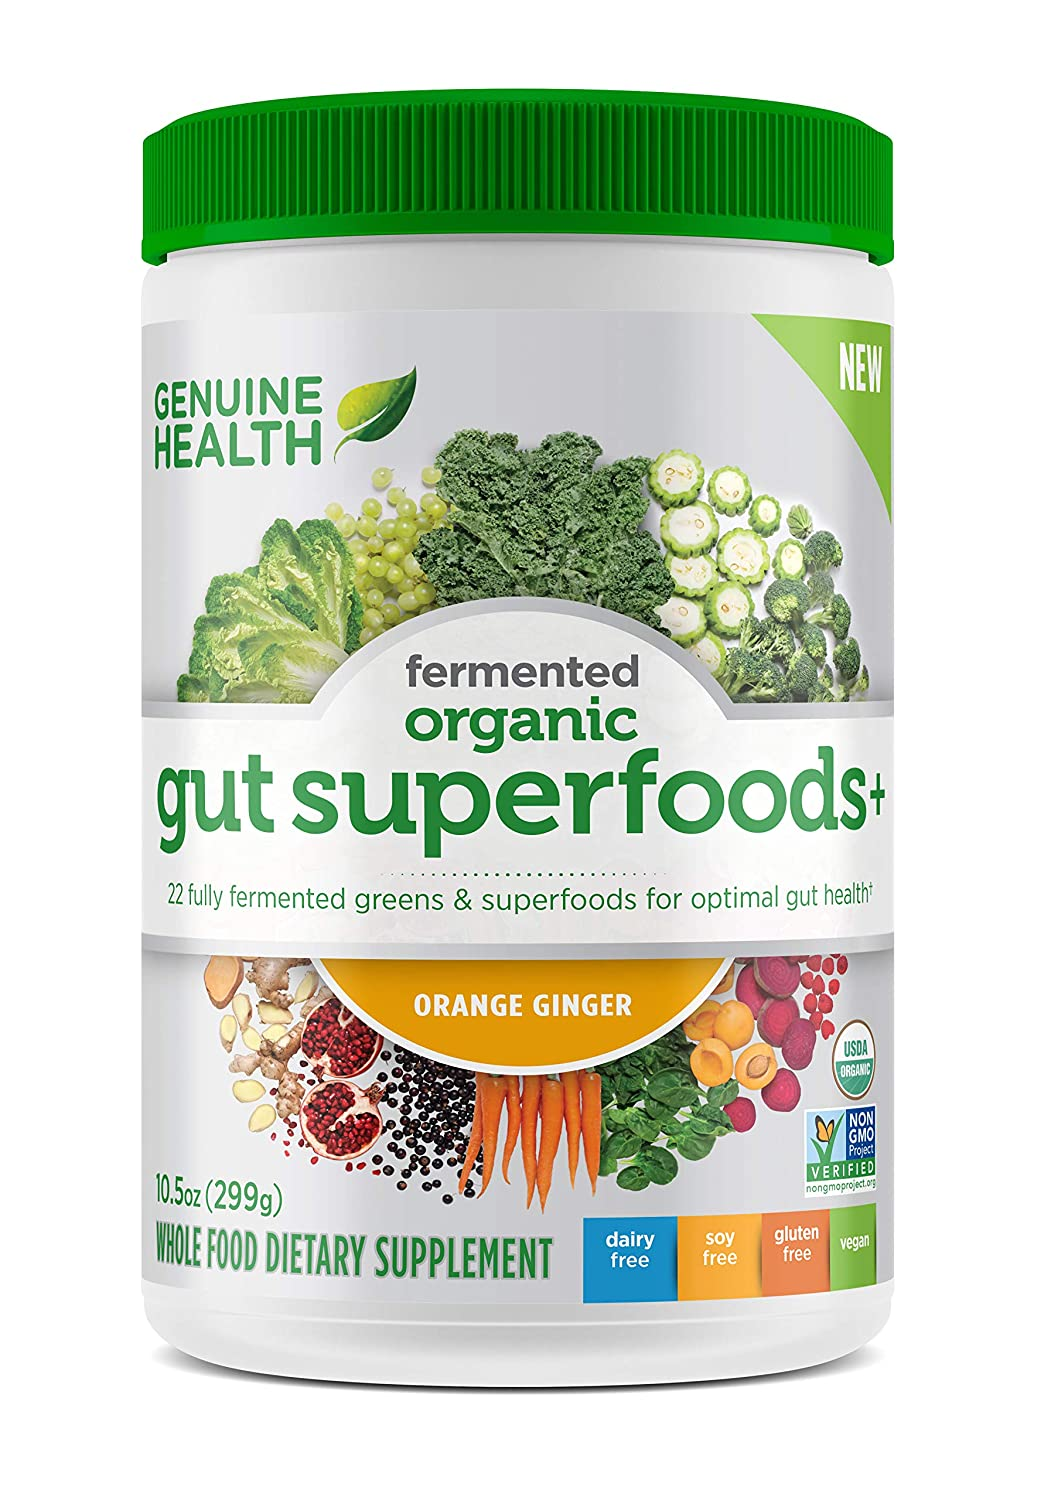 Genuine Health Fermented Organic Gut Superfoods+, Orange Ginger, Vegan Superfoods Powder, Prebiotics, Digestive Support, Gluten Free, Non-GMO, 10.5oz Tub